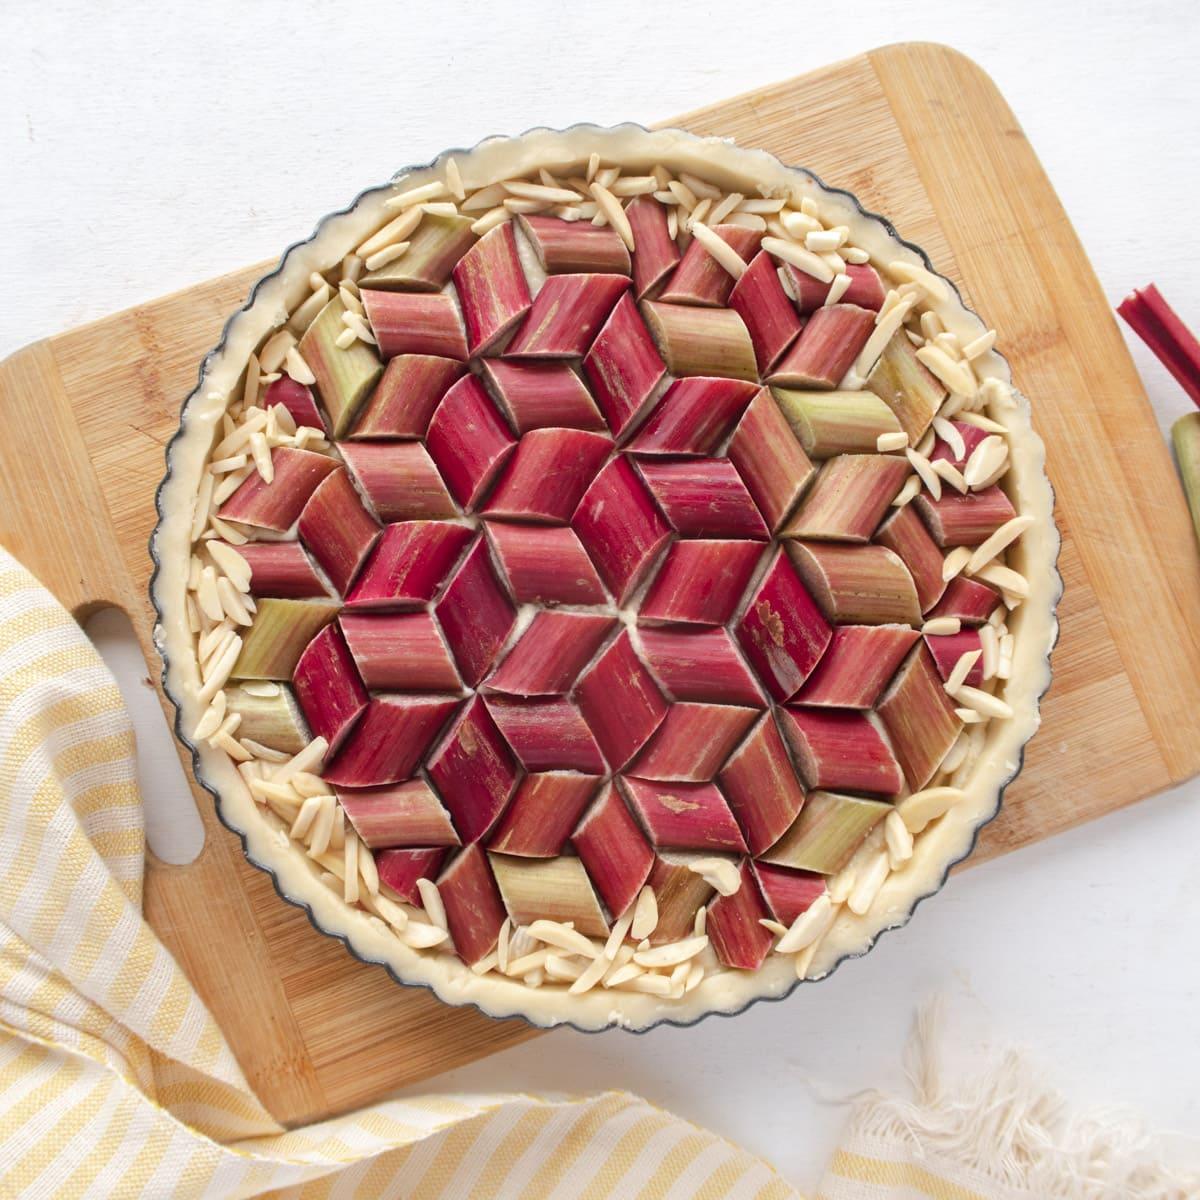 Top down view of a uncooked tart on a cutting board with a geometric rhubarb pattern on top of the tart